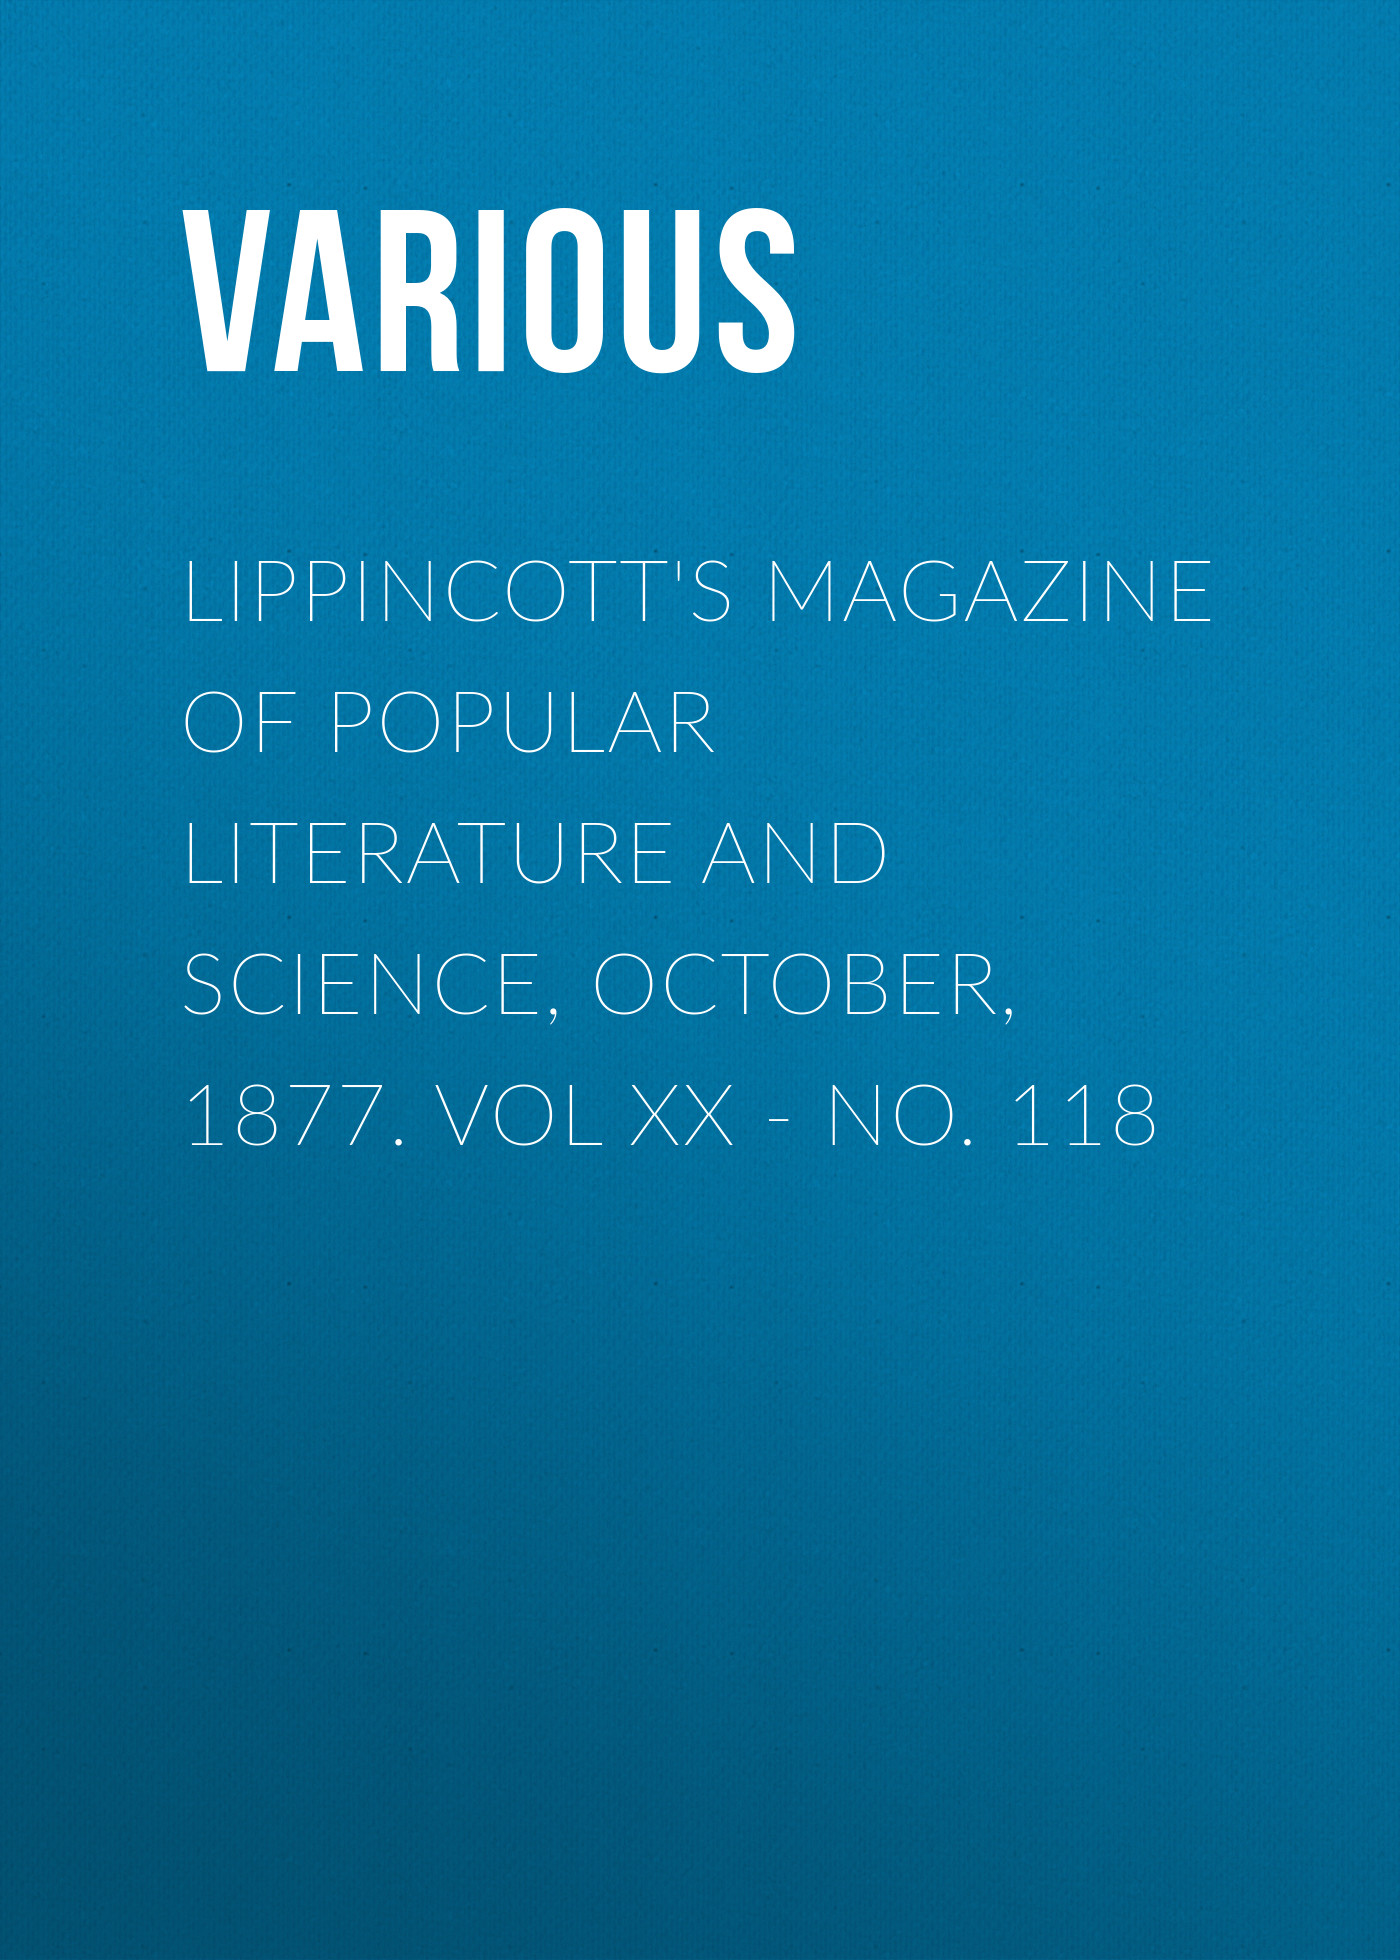 Various Lippincott's Magazine of Popular Literature and Science, October, 1877. Vol XX - No. 118 цена 2017